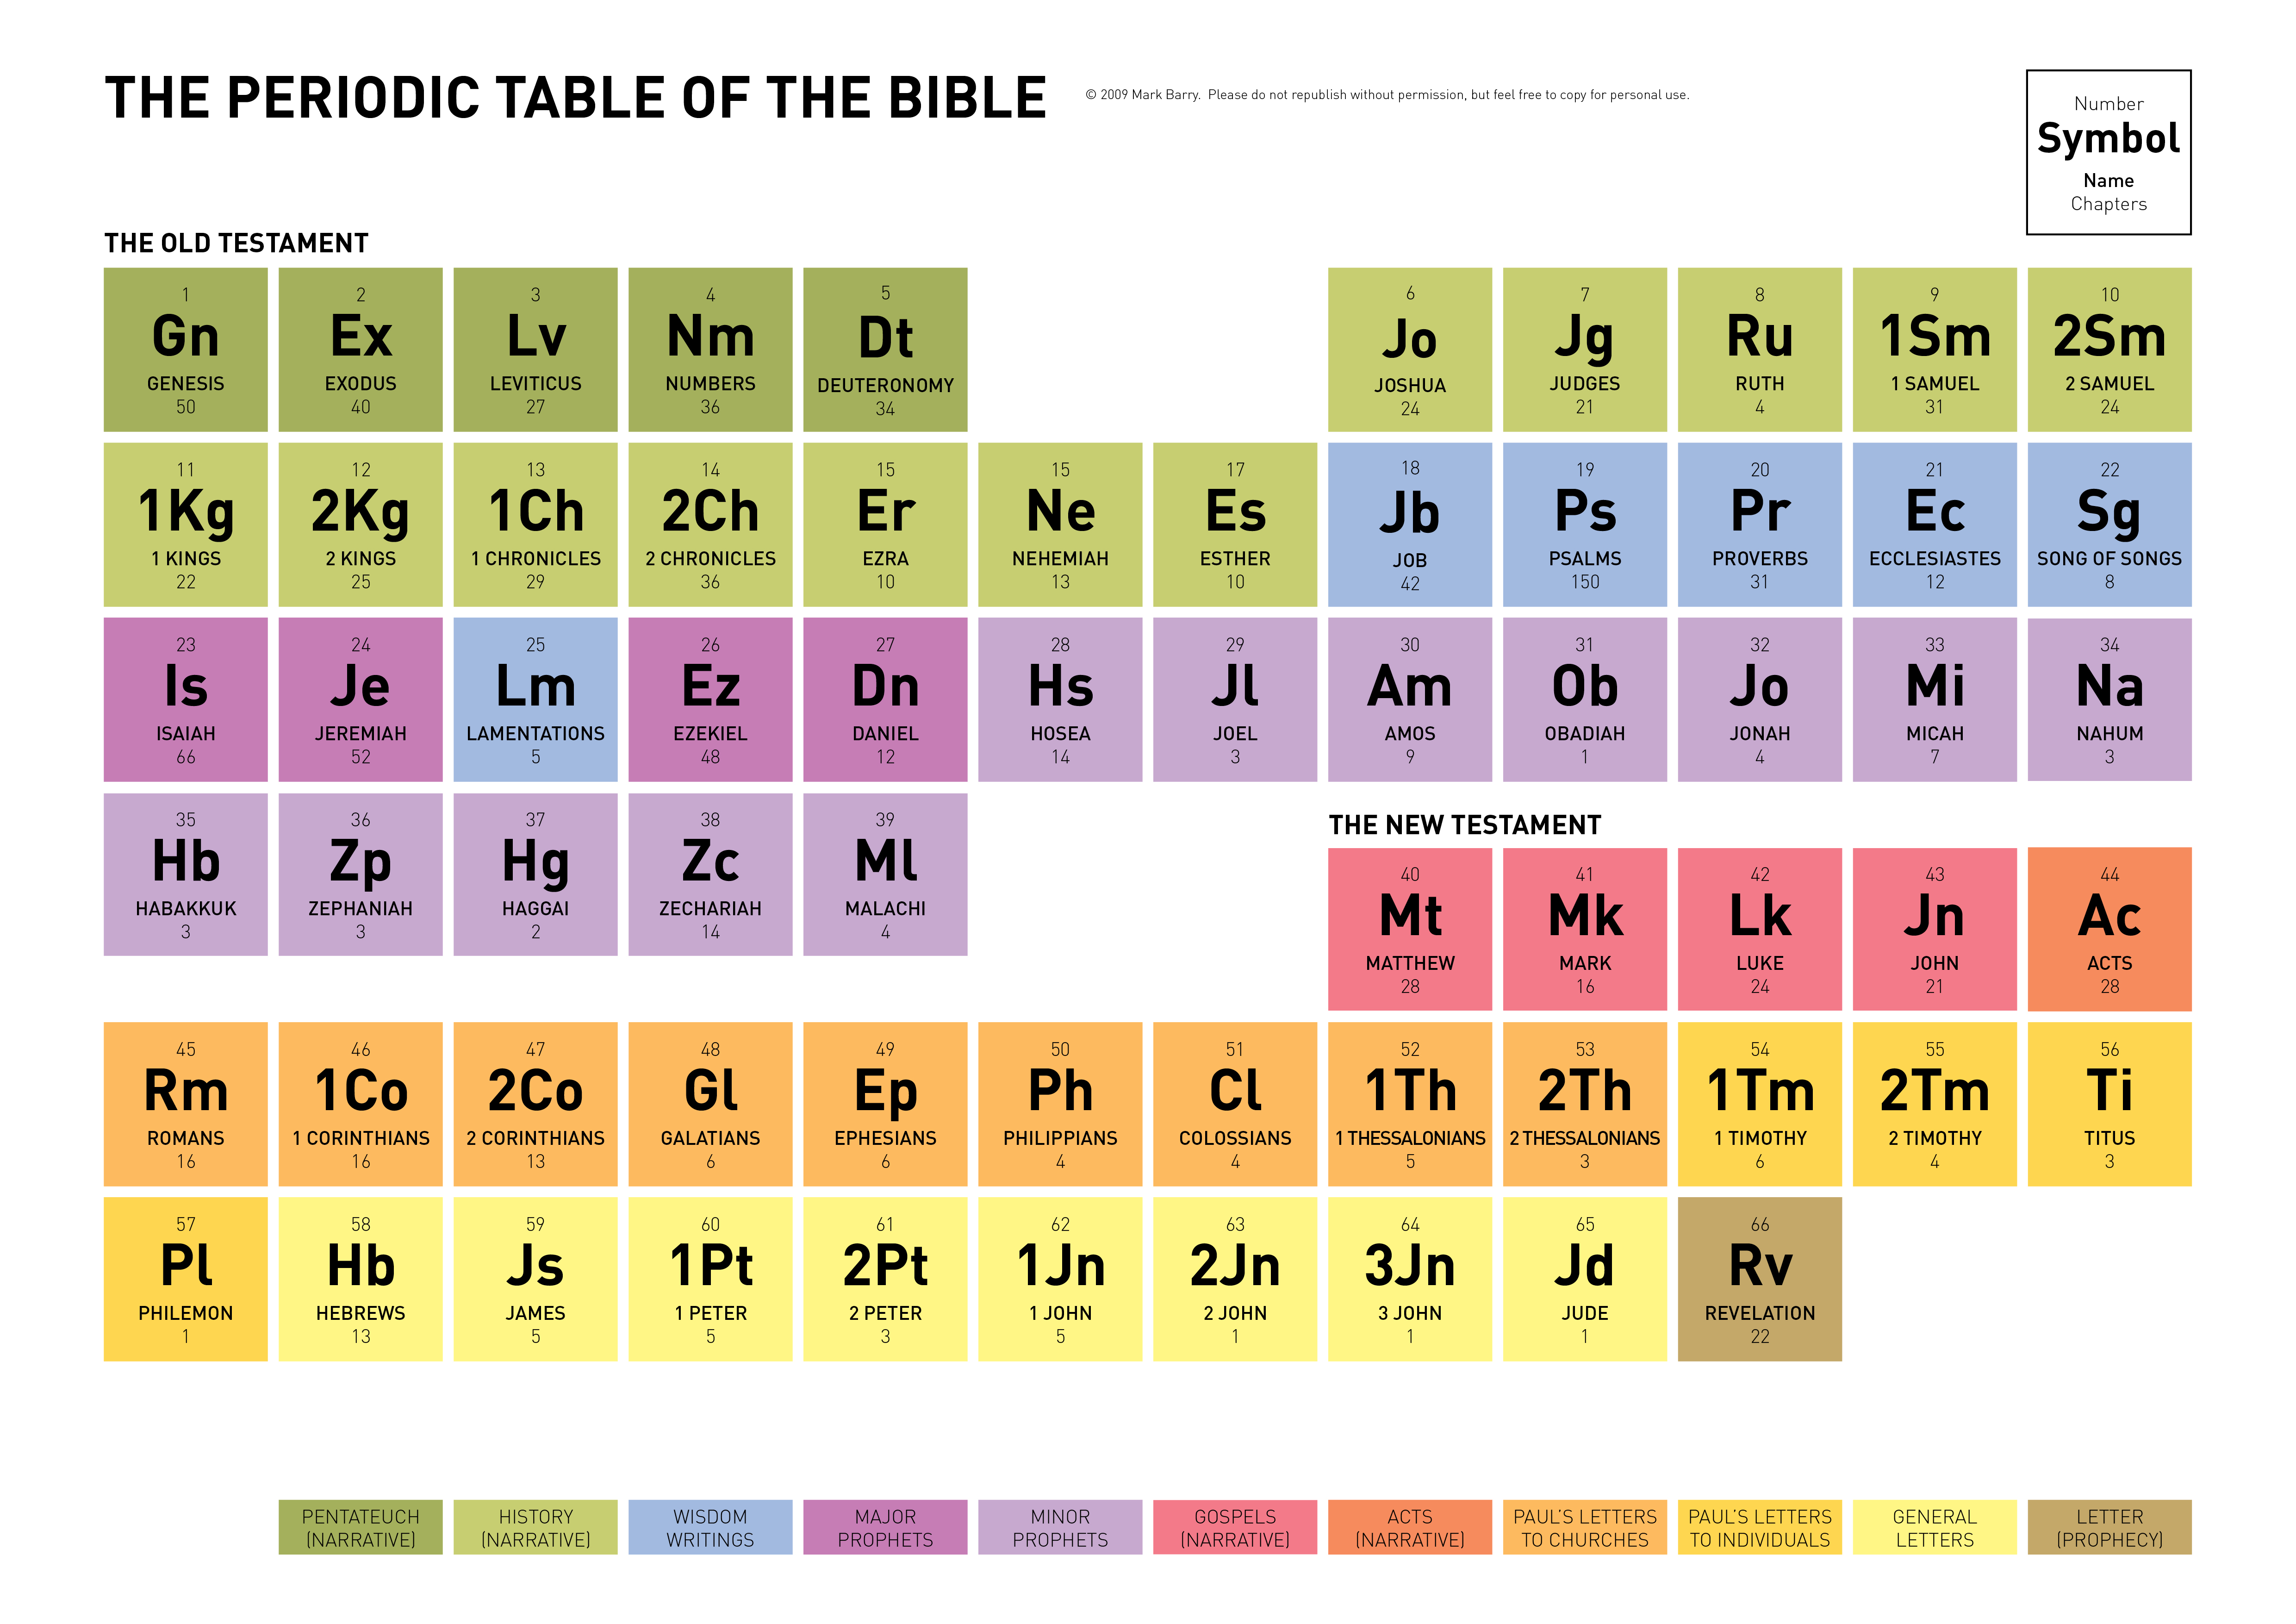 Periodic table of the bible adamlickey bibleperiodictable gamestrikefo Image collections